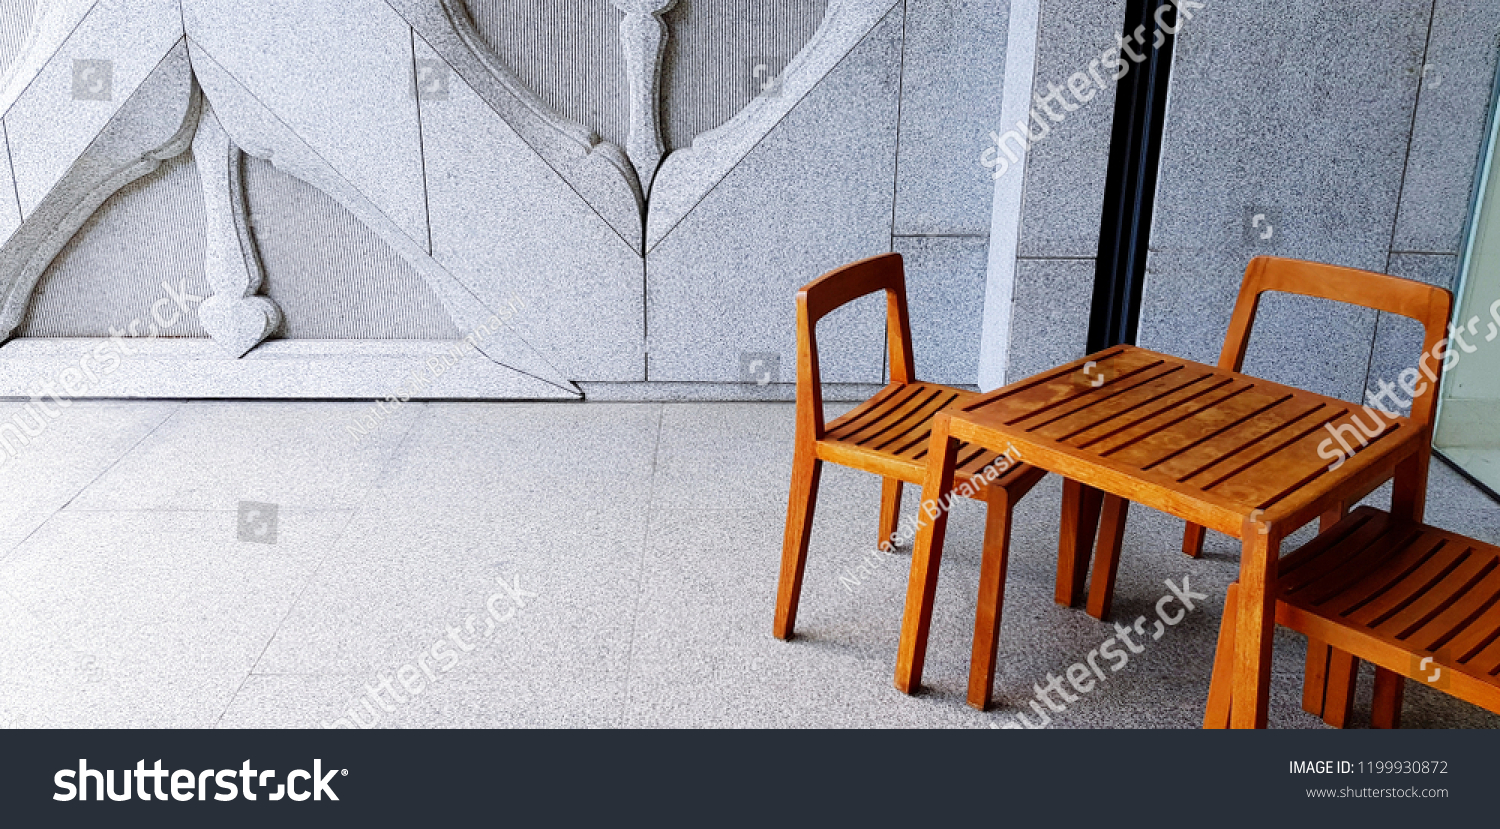 chair design bangkok butterfly covers brisbane thailand october 16 2018 wooden stock photo edit now and table with art modern